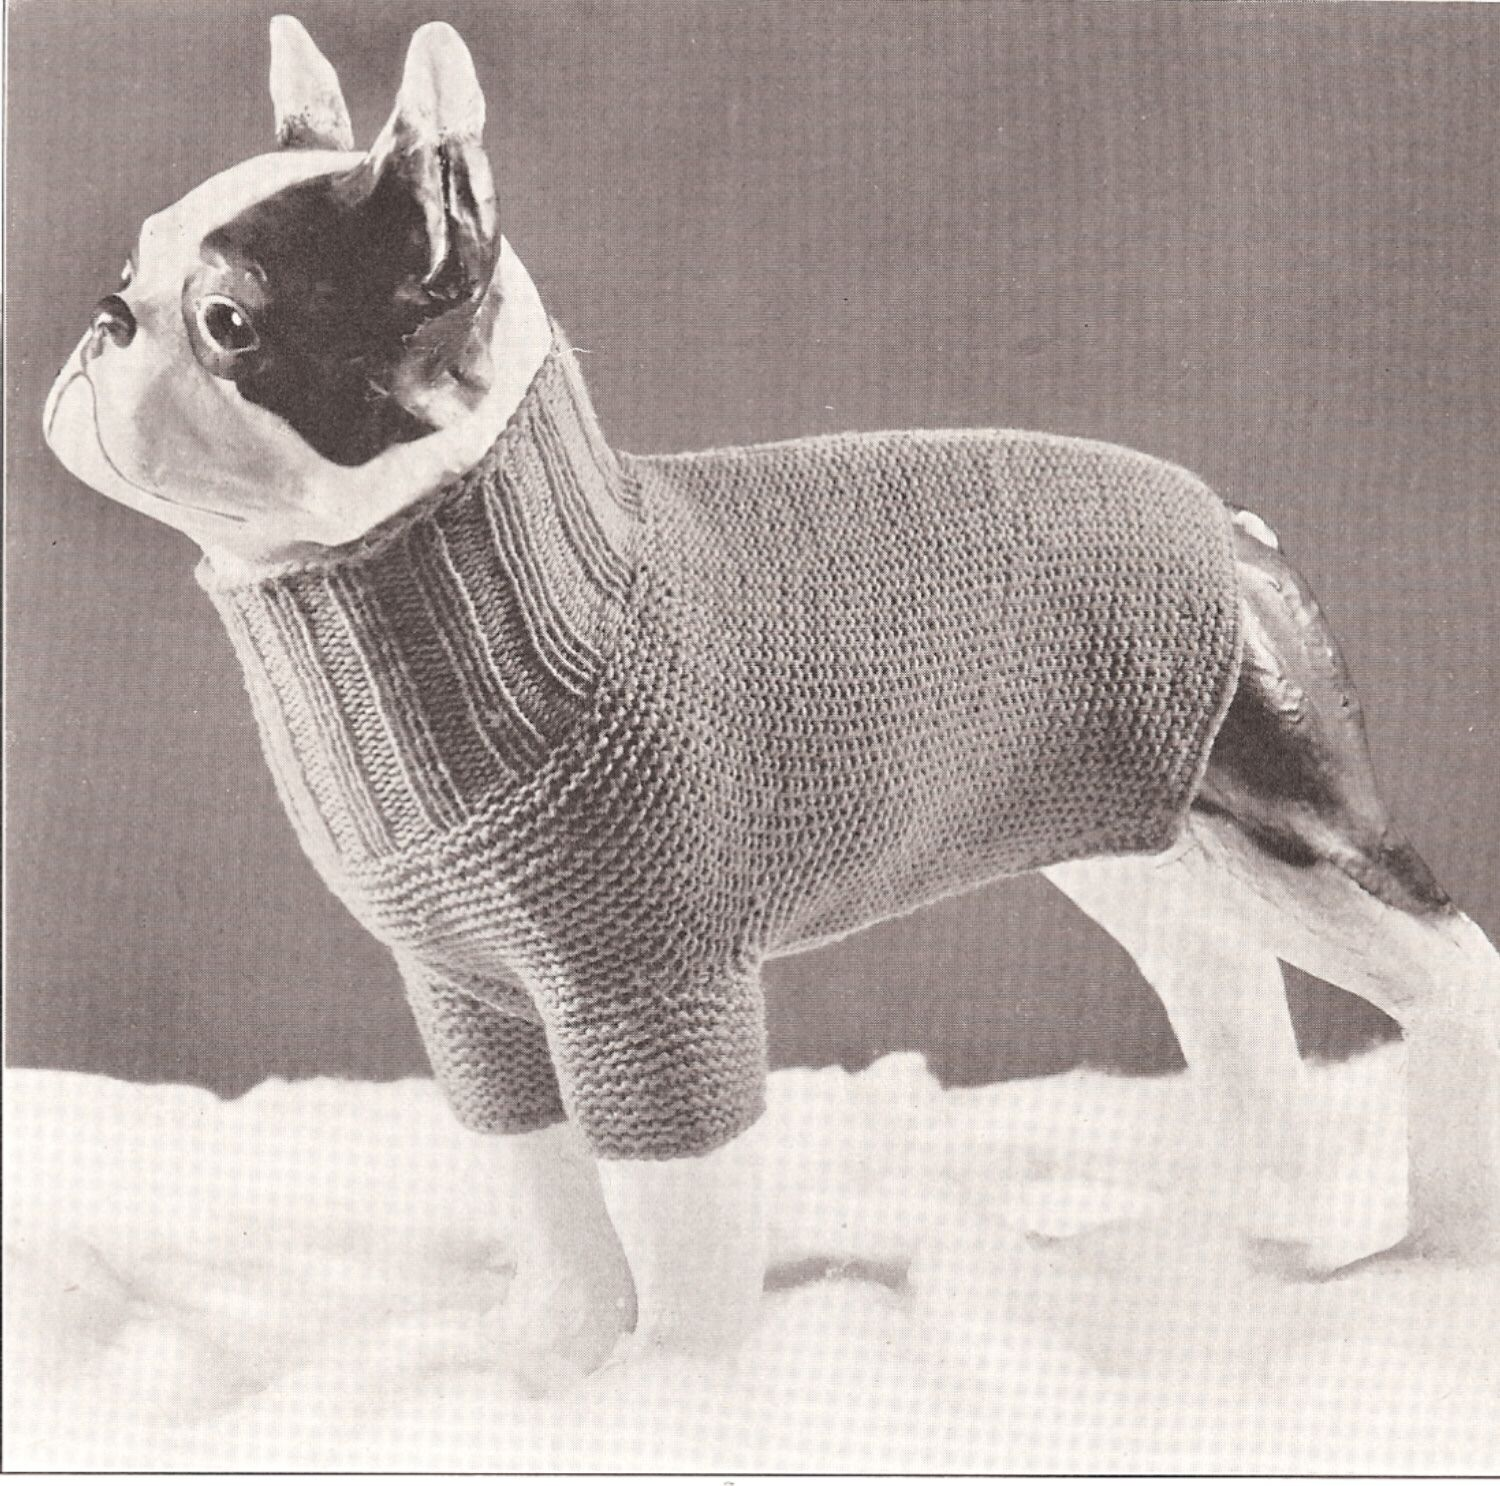 Details about vintage antique knitting pattern to make dog sweater details about vintage antique knitting pattern to make dog sweater coat turtle neck dogsweater bankloansurffo Gallery